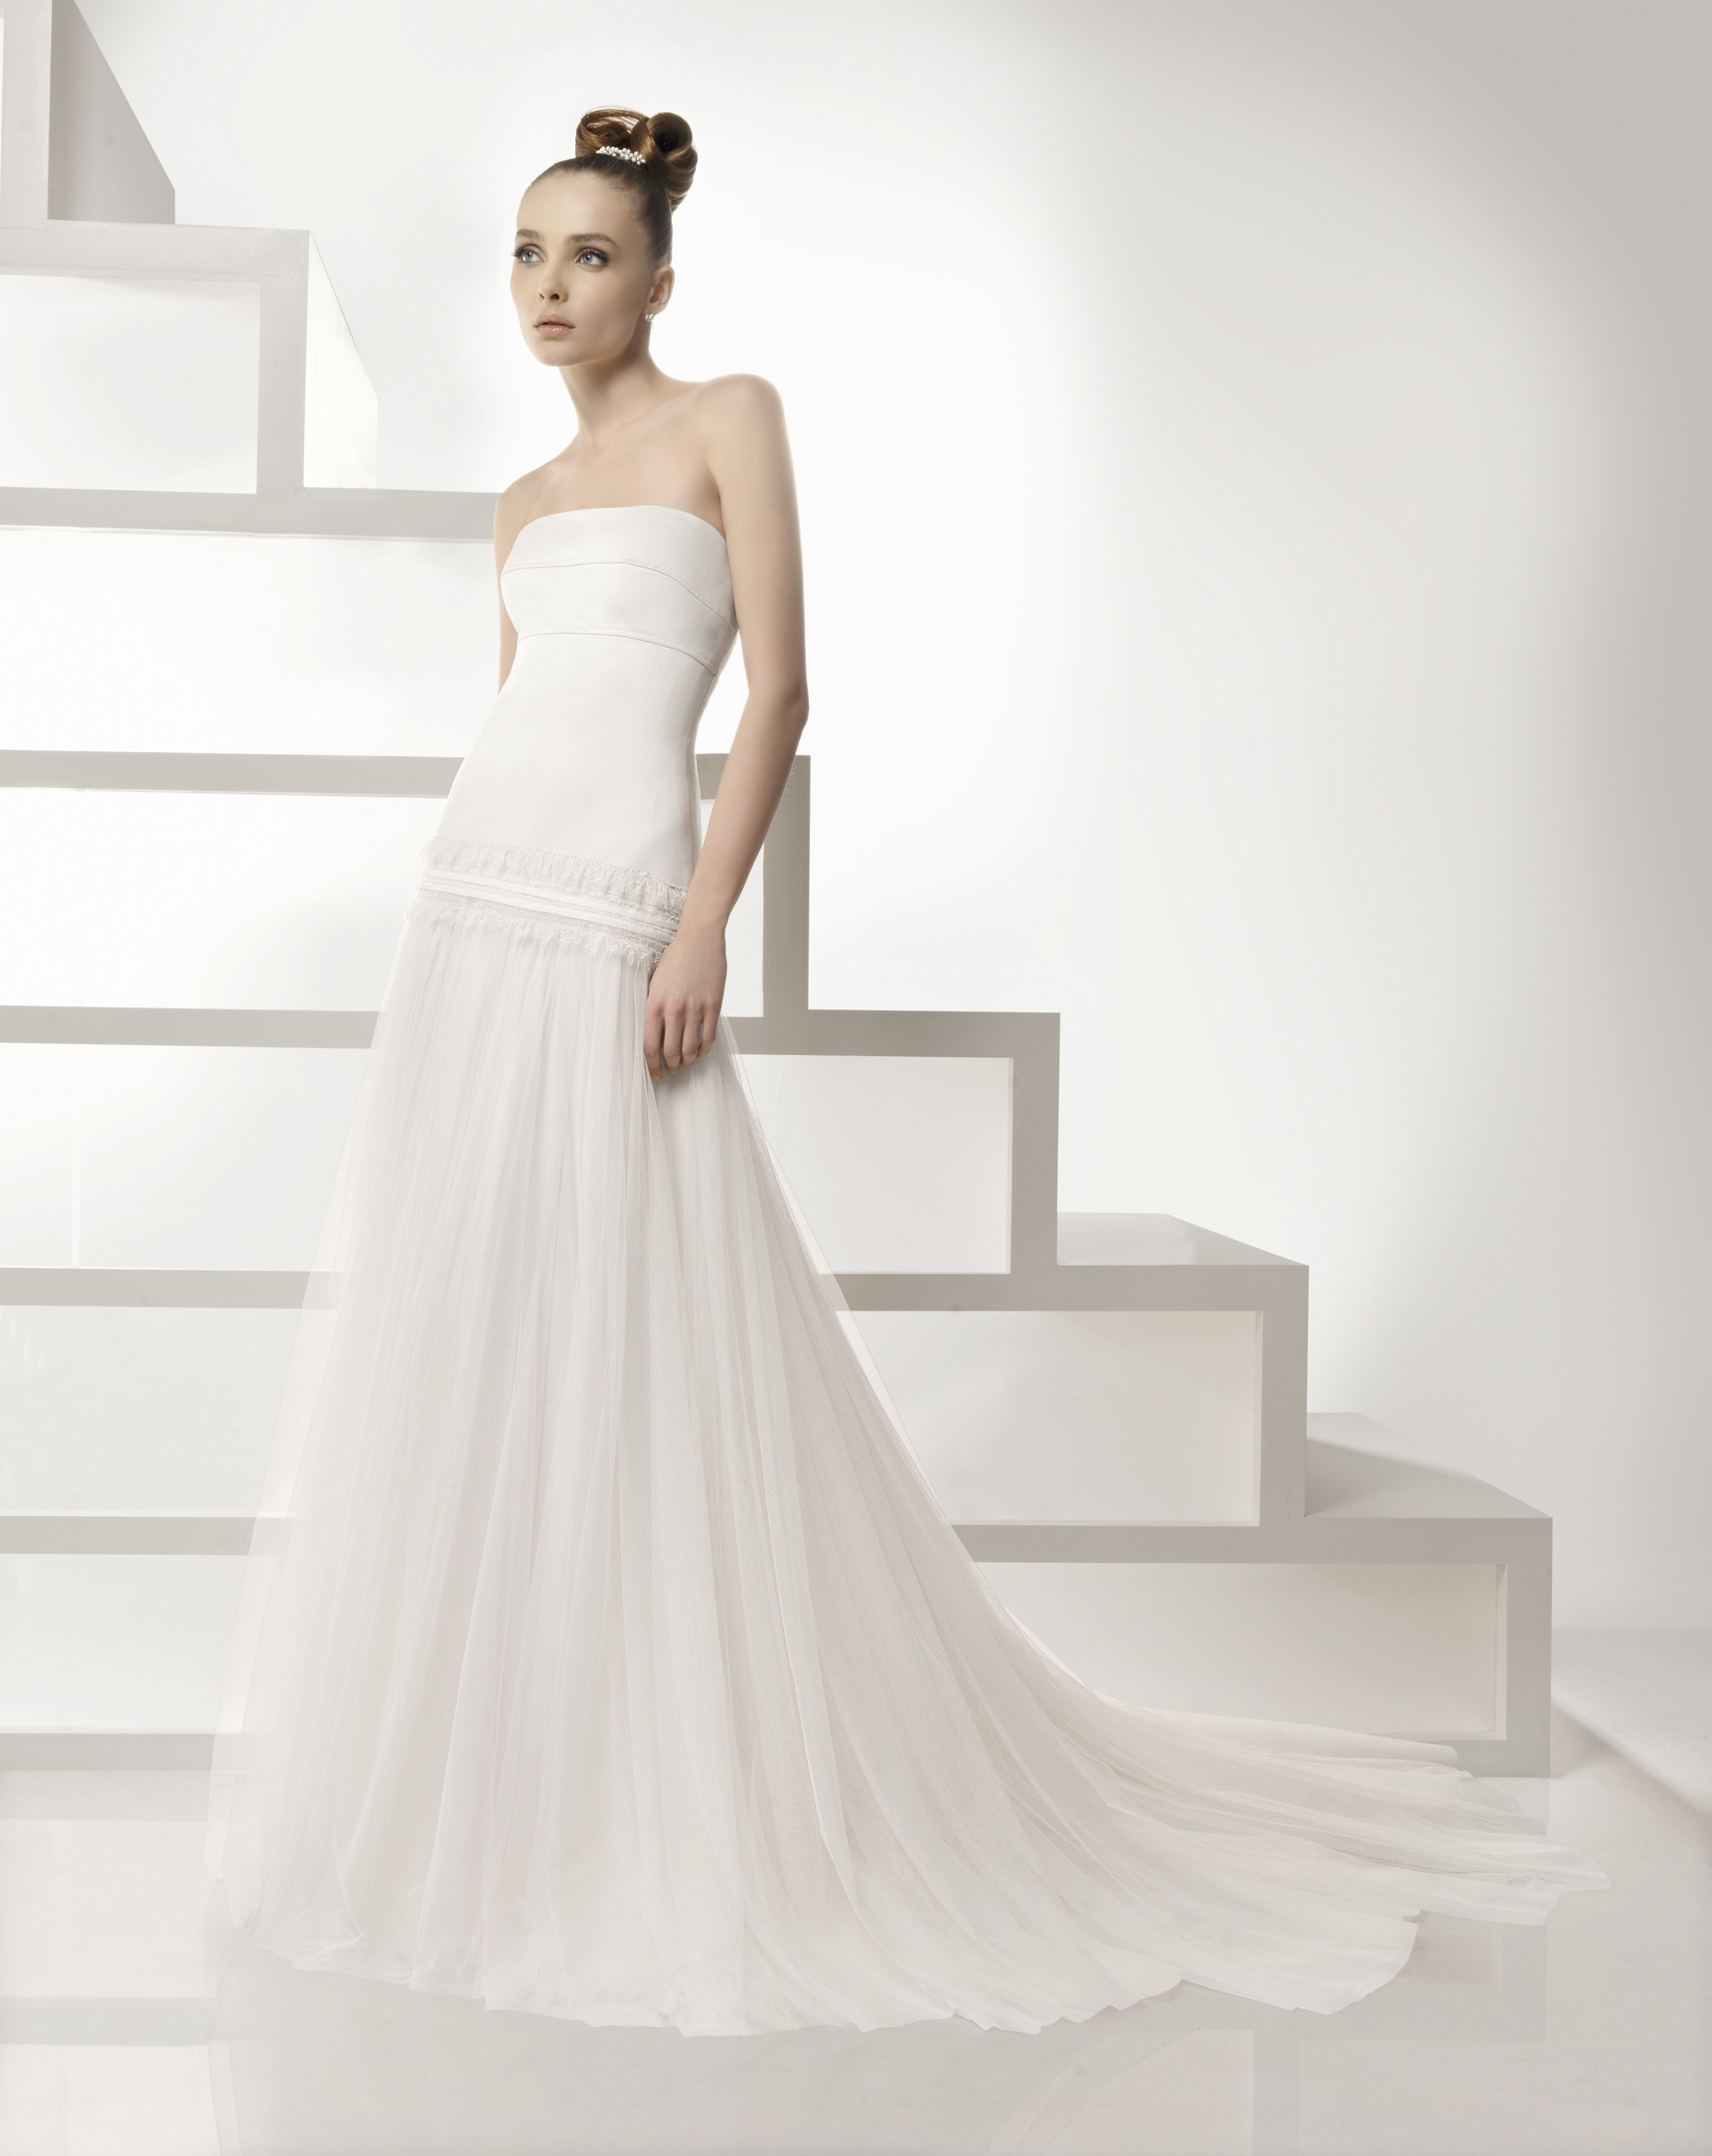 203-eclipse-strapless-ivory-wedding-dress-2011-rosa-clara-a-line.original